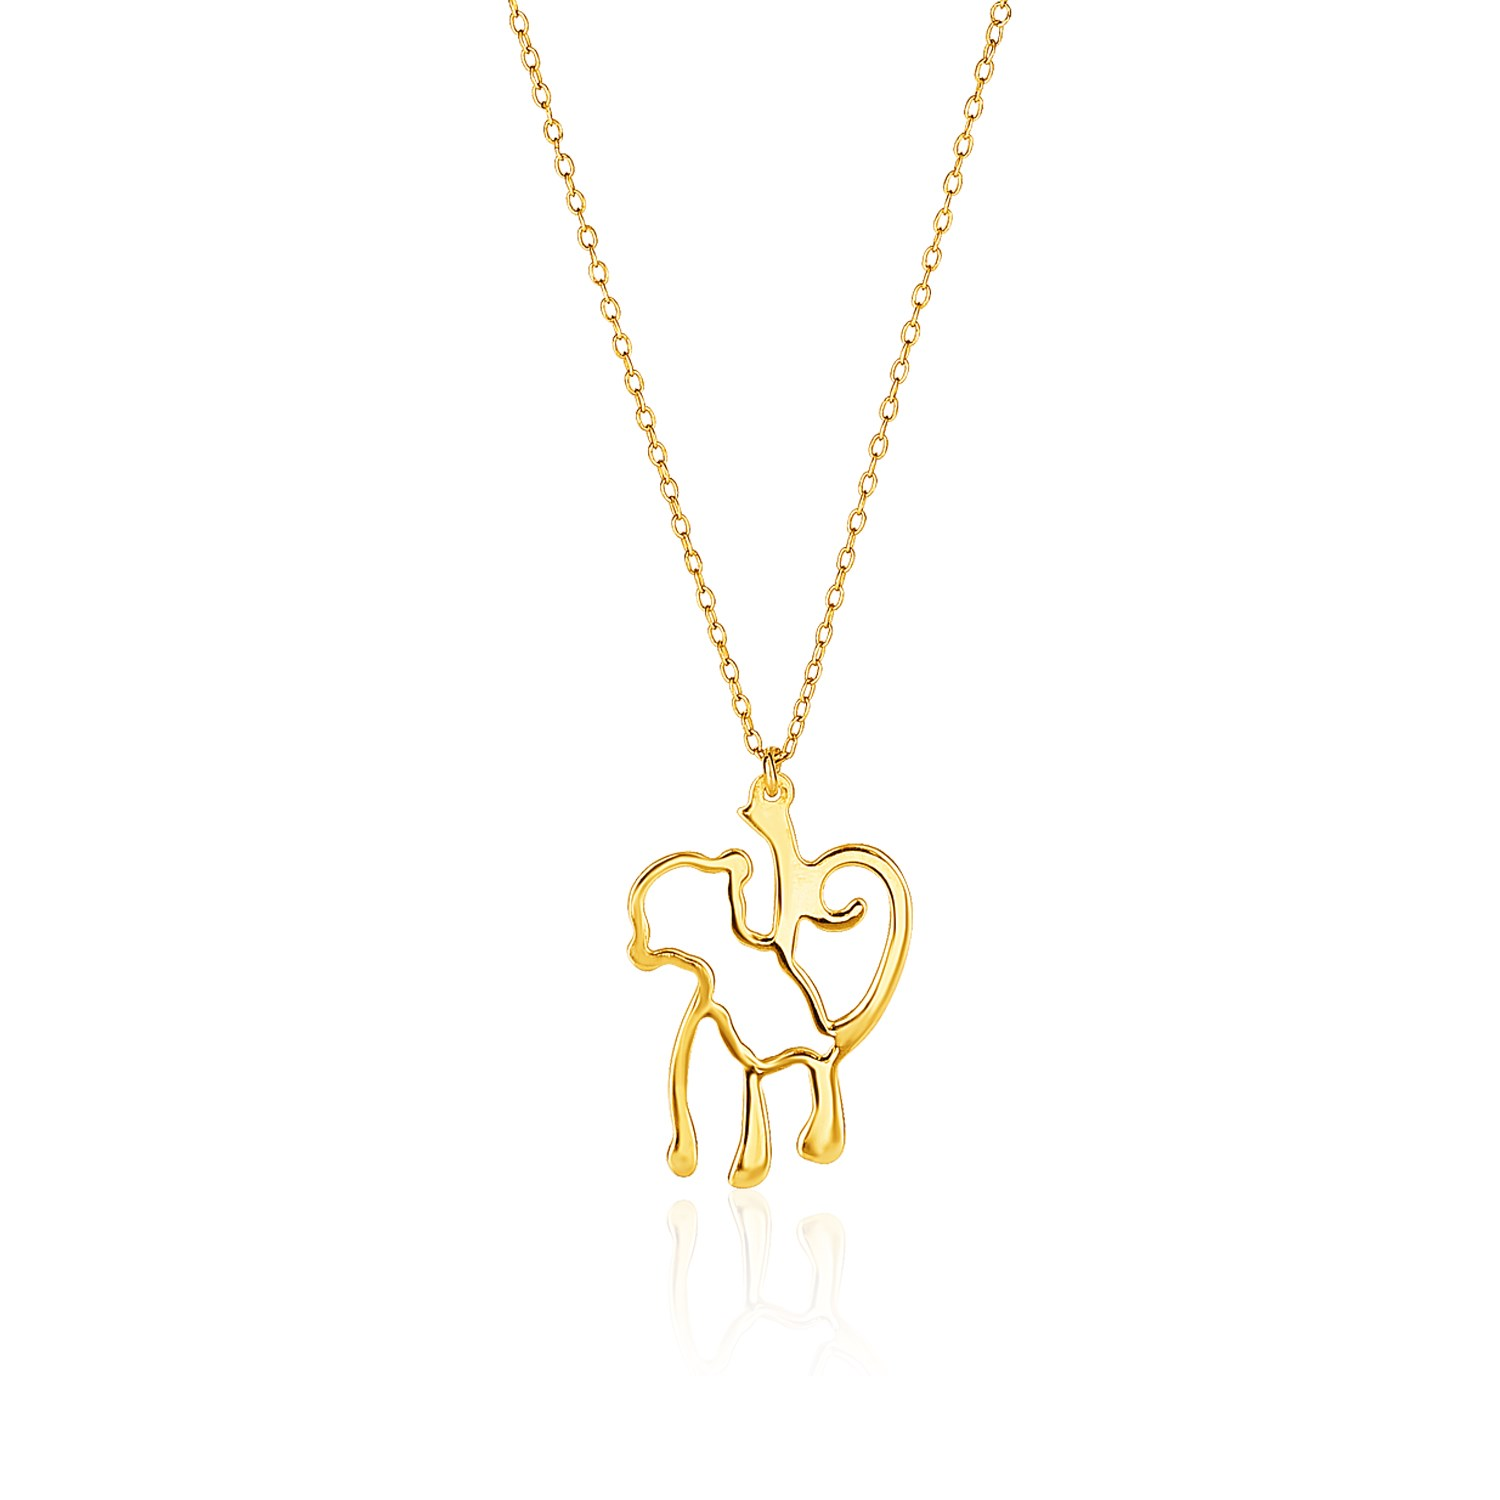 You rock gems showcase 14k yellow gold oval link necklace with monkey pendant aloadofball Gallery